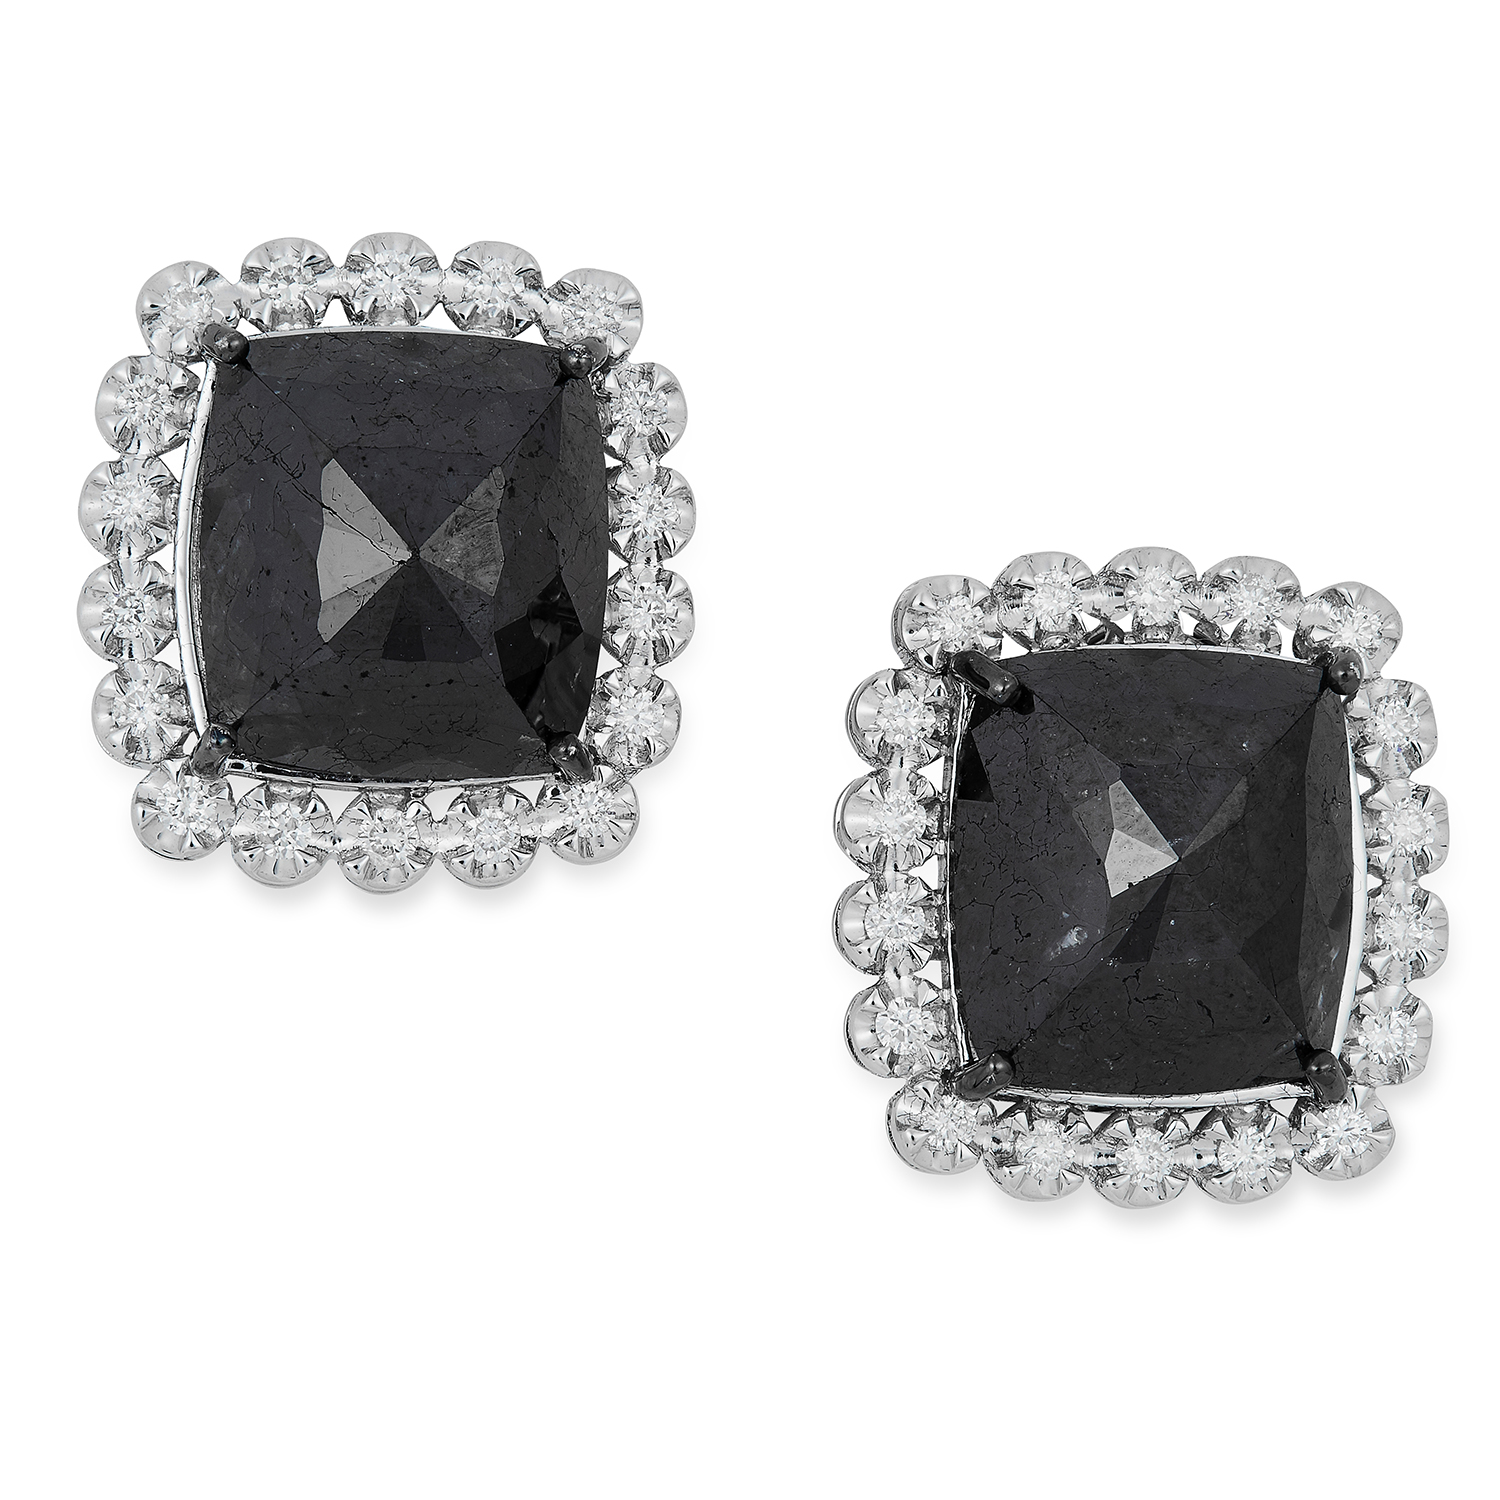 BLACK DIAMOND CLUSTER EARRINGS each set with a faceted black diamond in a border of round cut